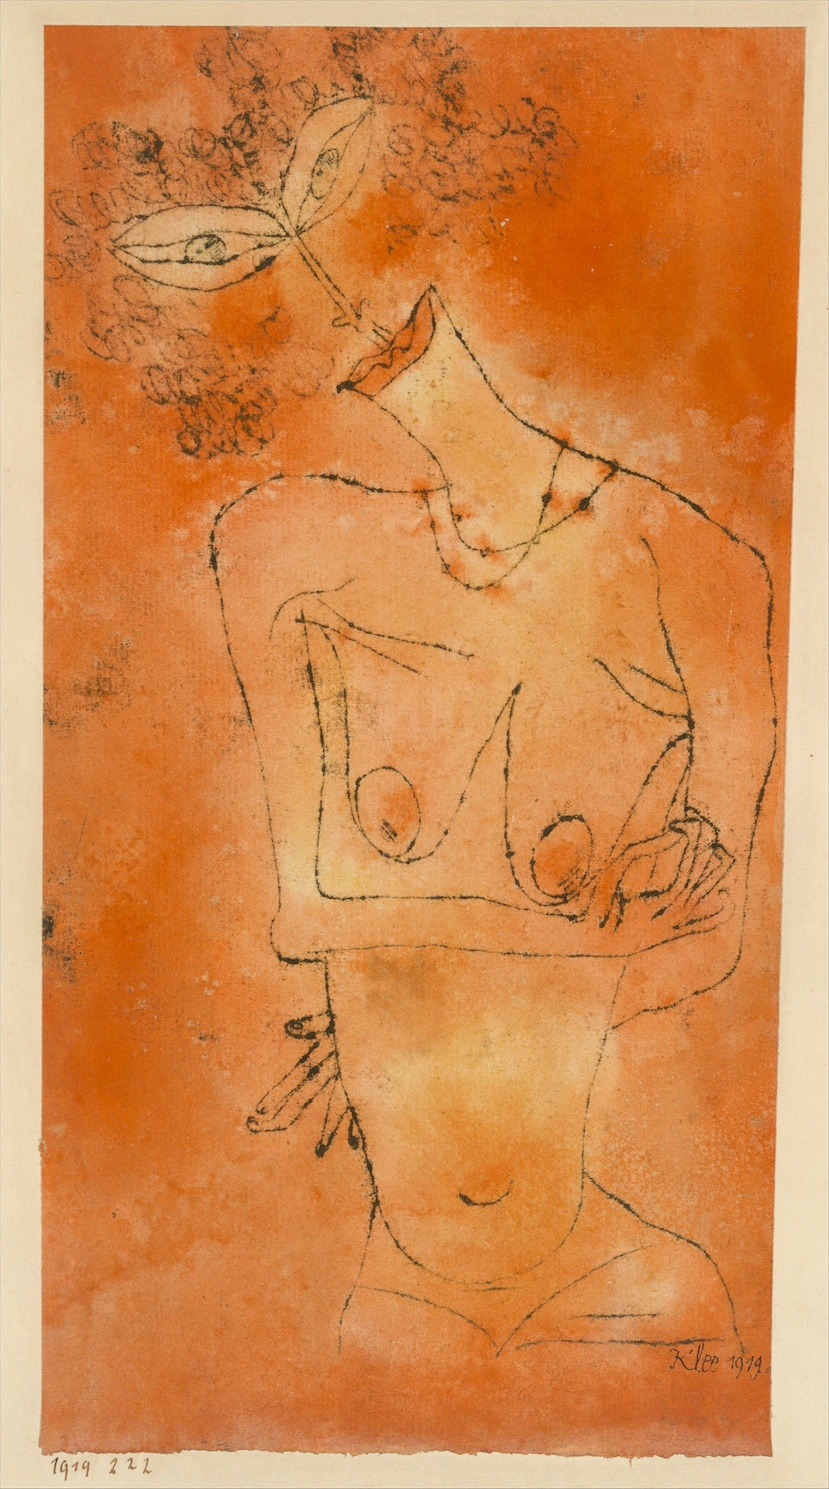 Paul Klee / Lady Inclining Her Head / Watercolor and transferred printing ink on paper mounted on cardboard (Acquerello ed inchiostro da stampa su carta montato su cartoncino) / 1919